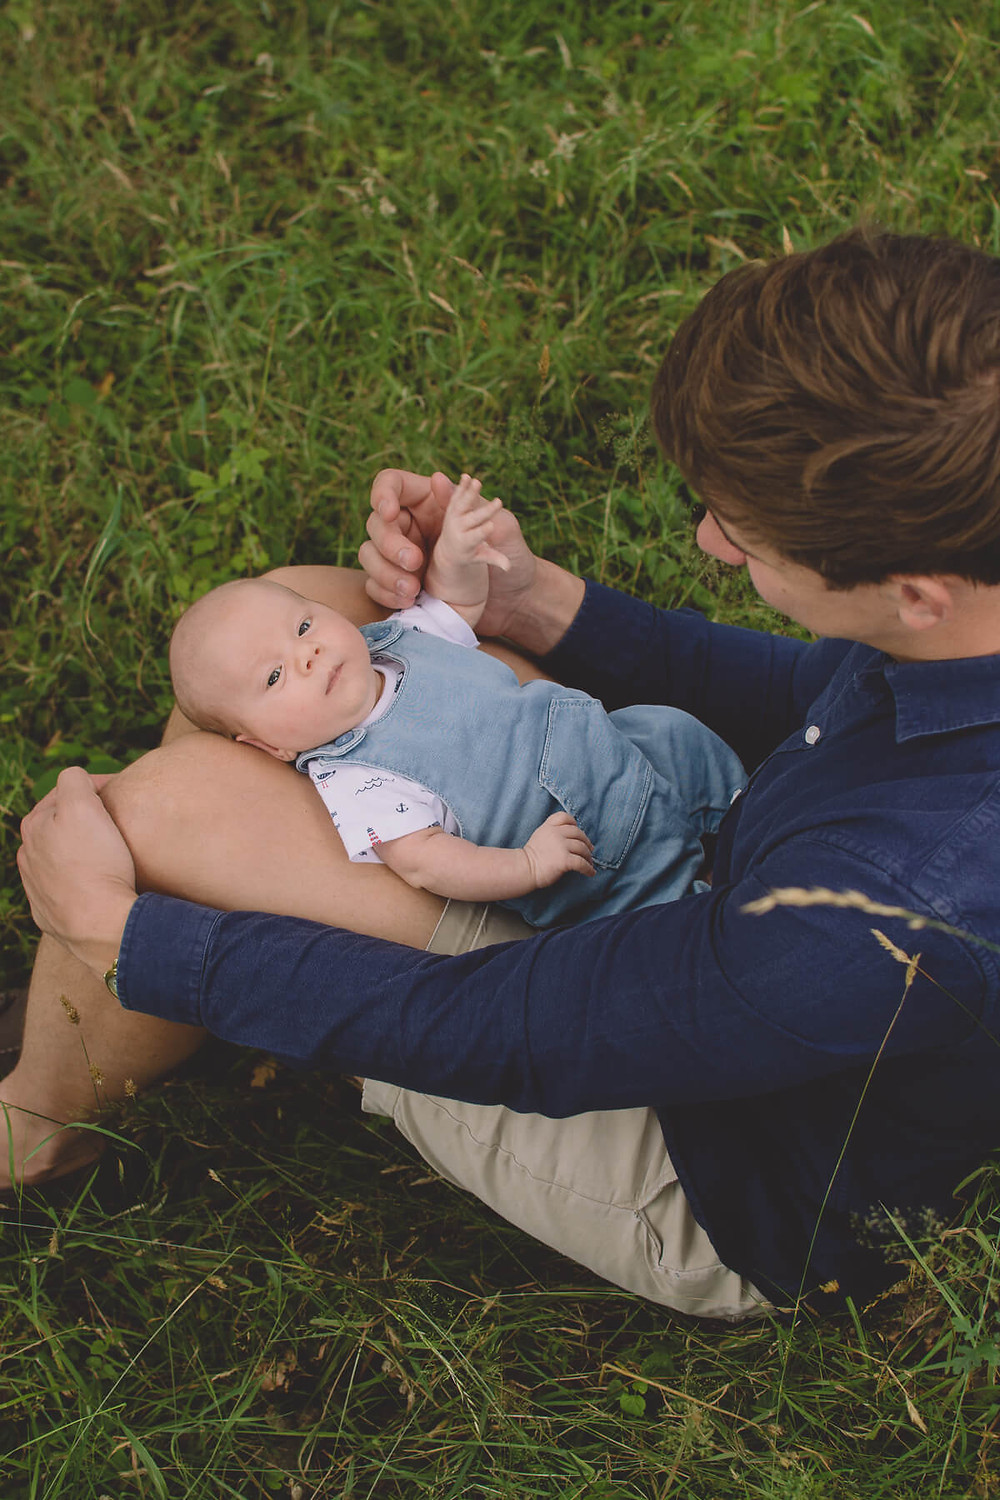 young father newborn baby on his lap sitting in grass